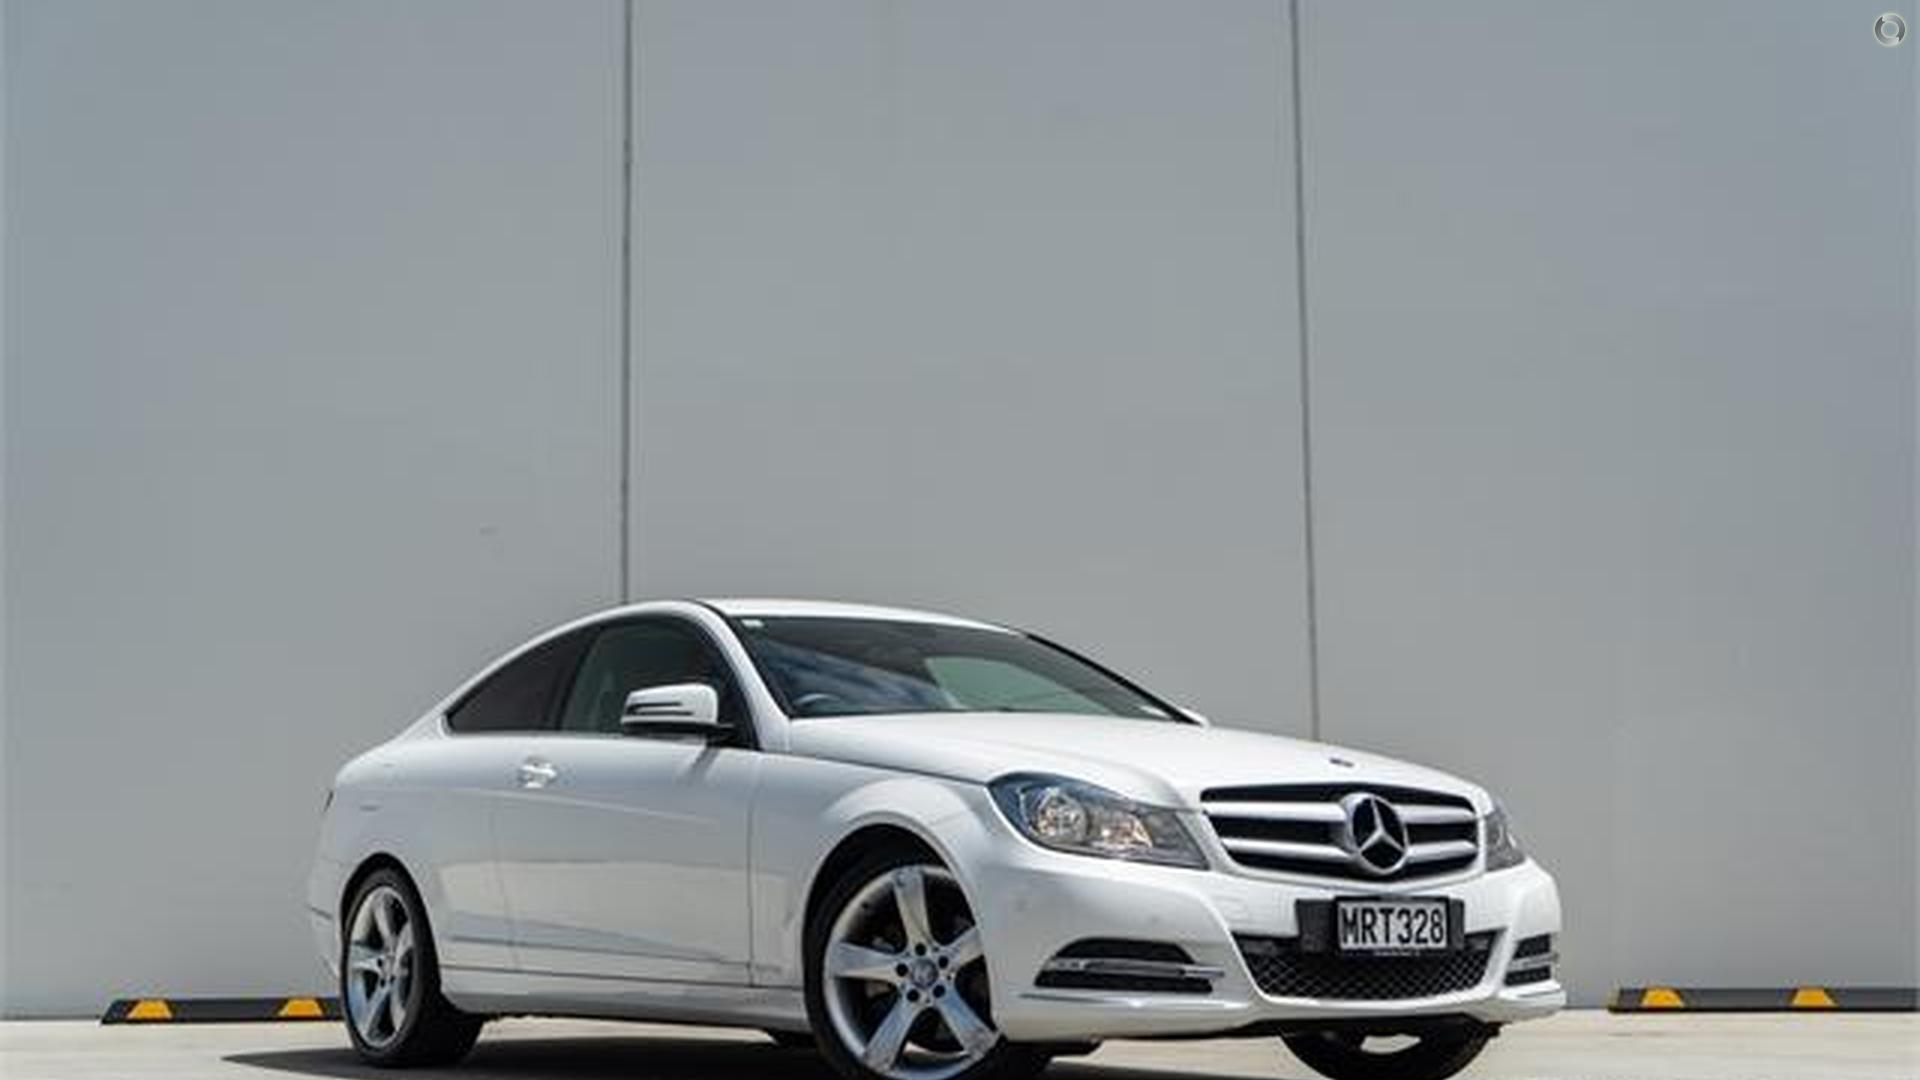 2013 Mercedes-Benz C 250 Coupe